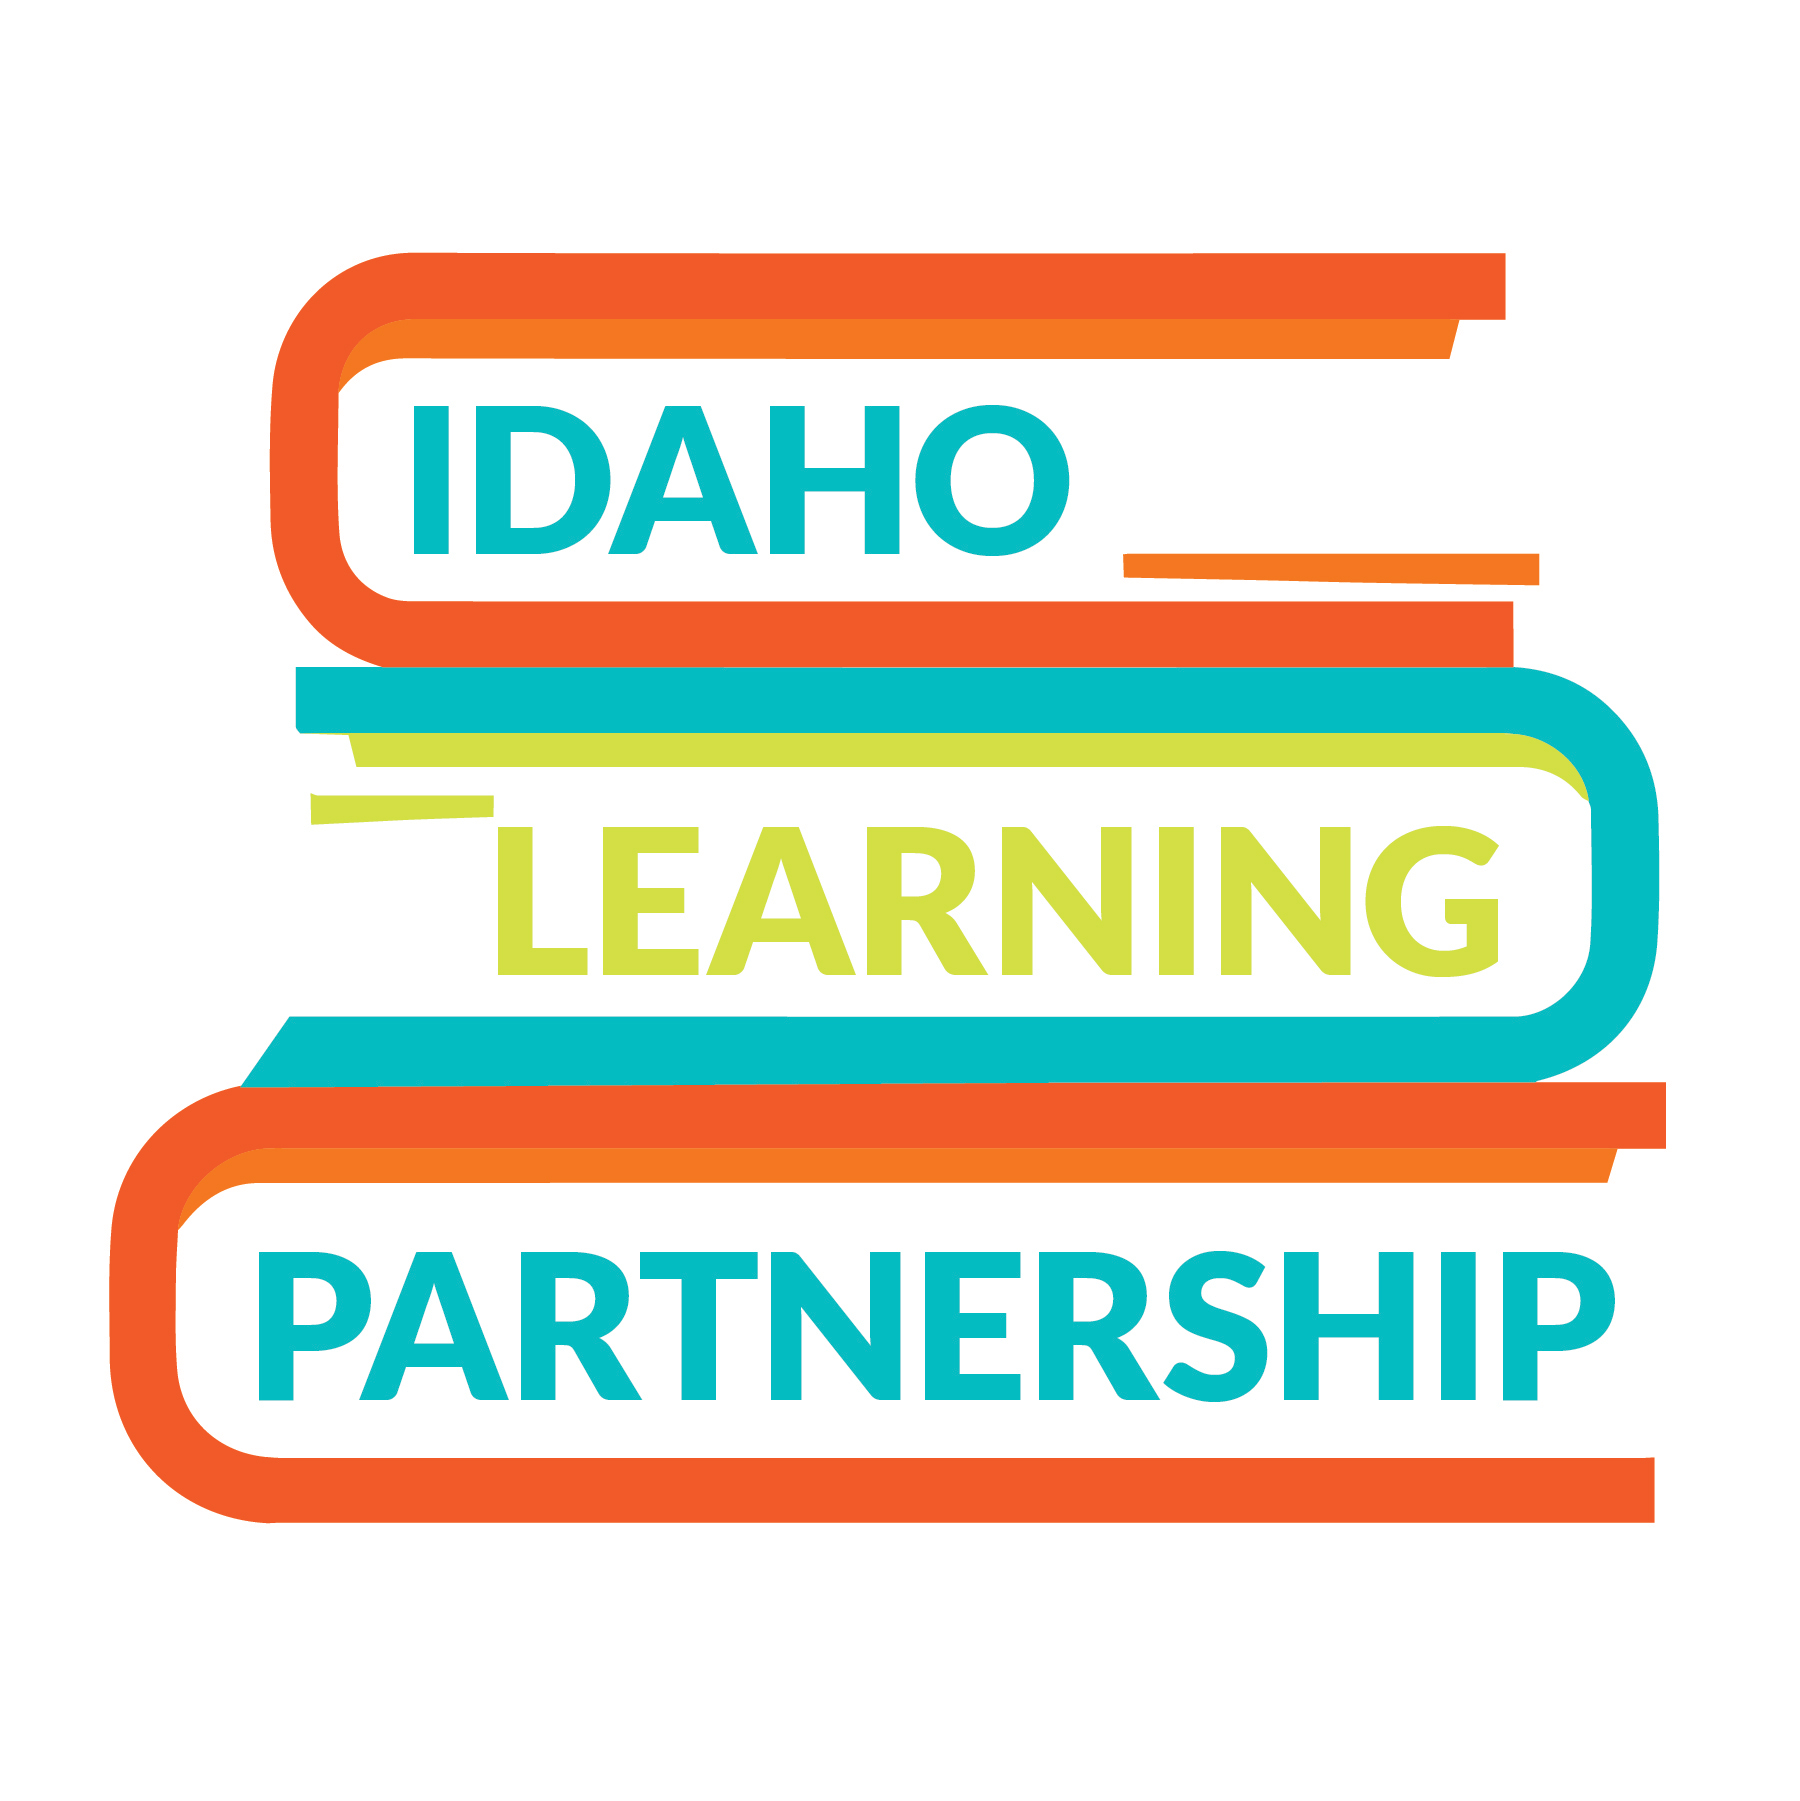 Idaho Learning Partnership